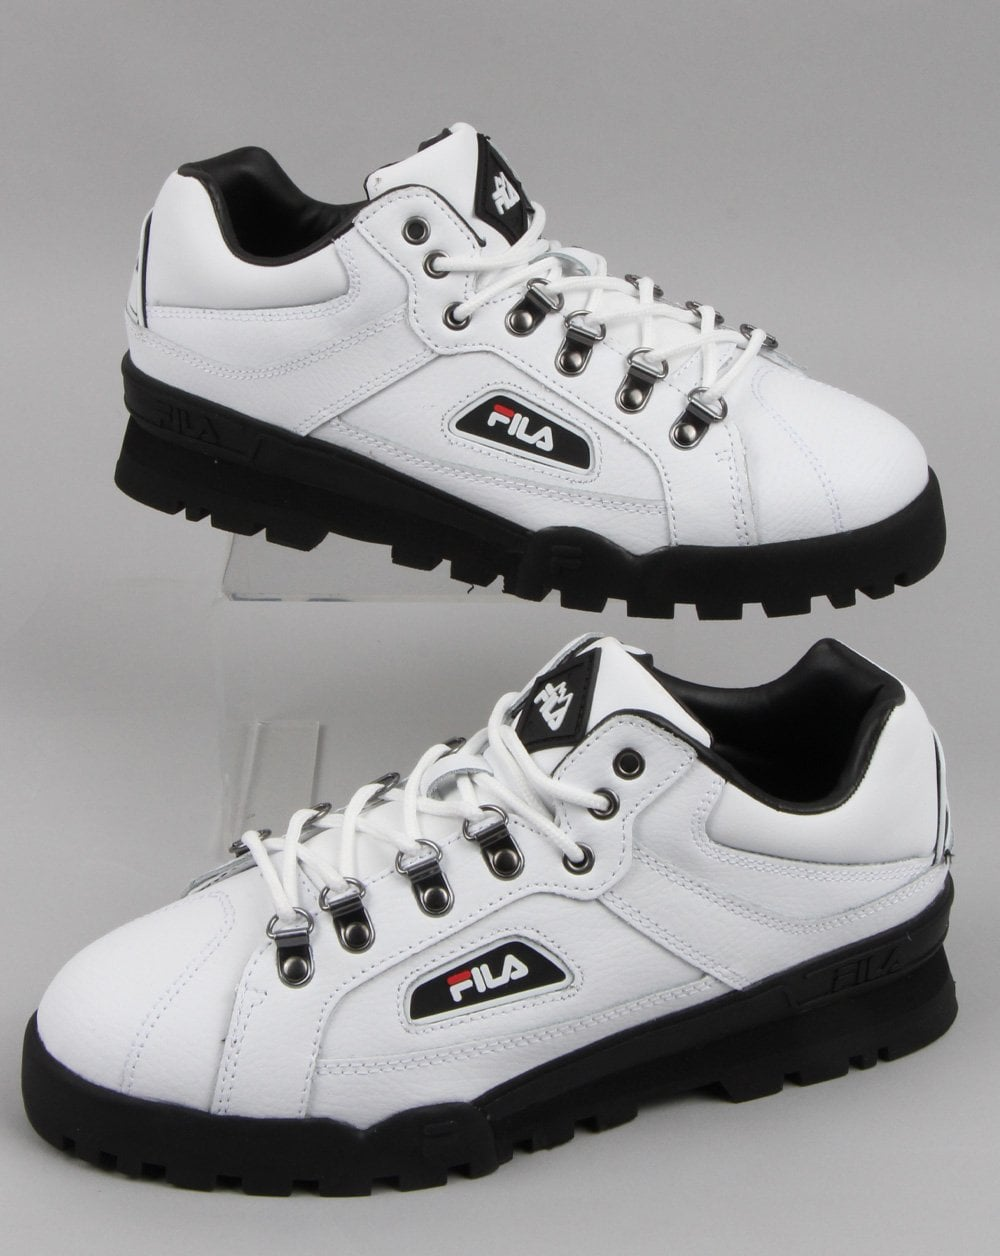 Fila  Vintage  Trailblazer Boots  White Leather Hiking Mens